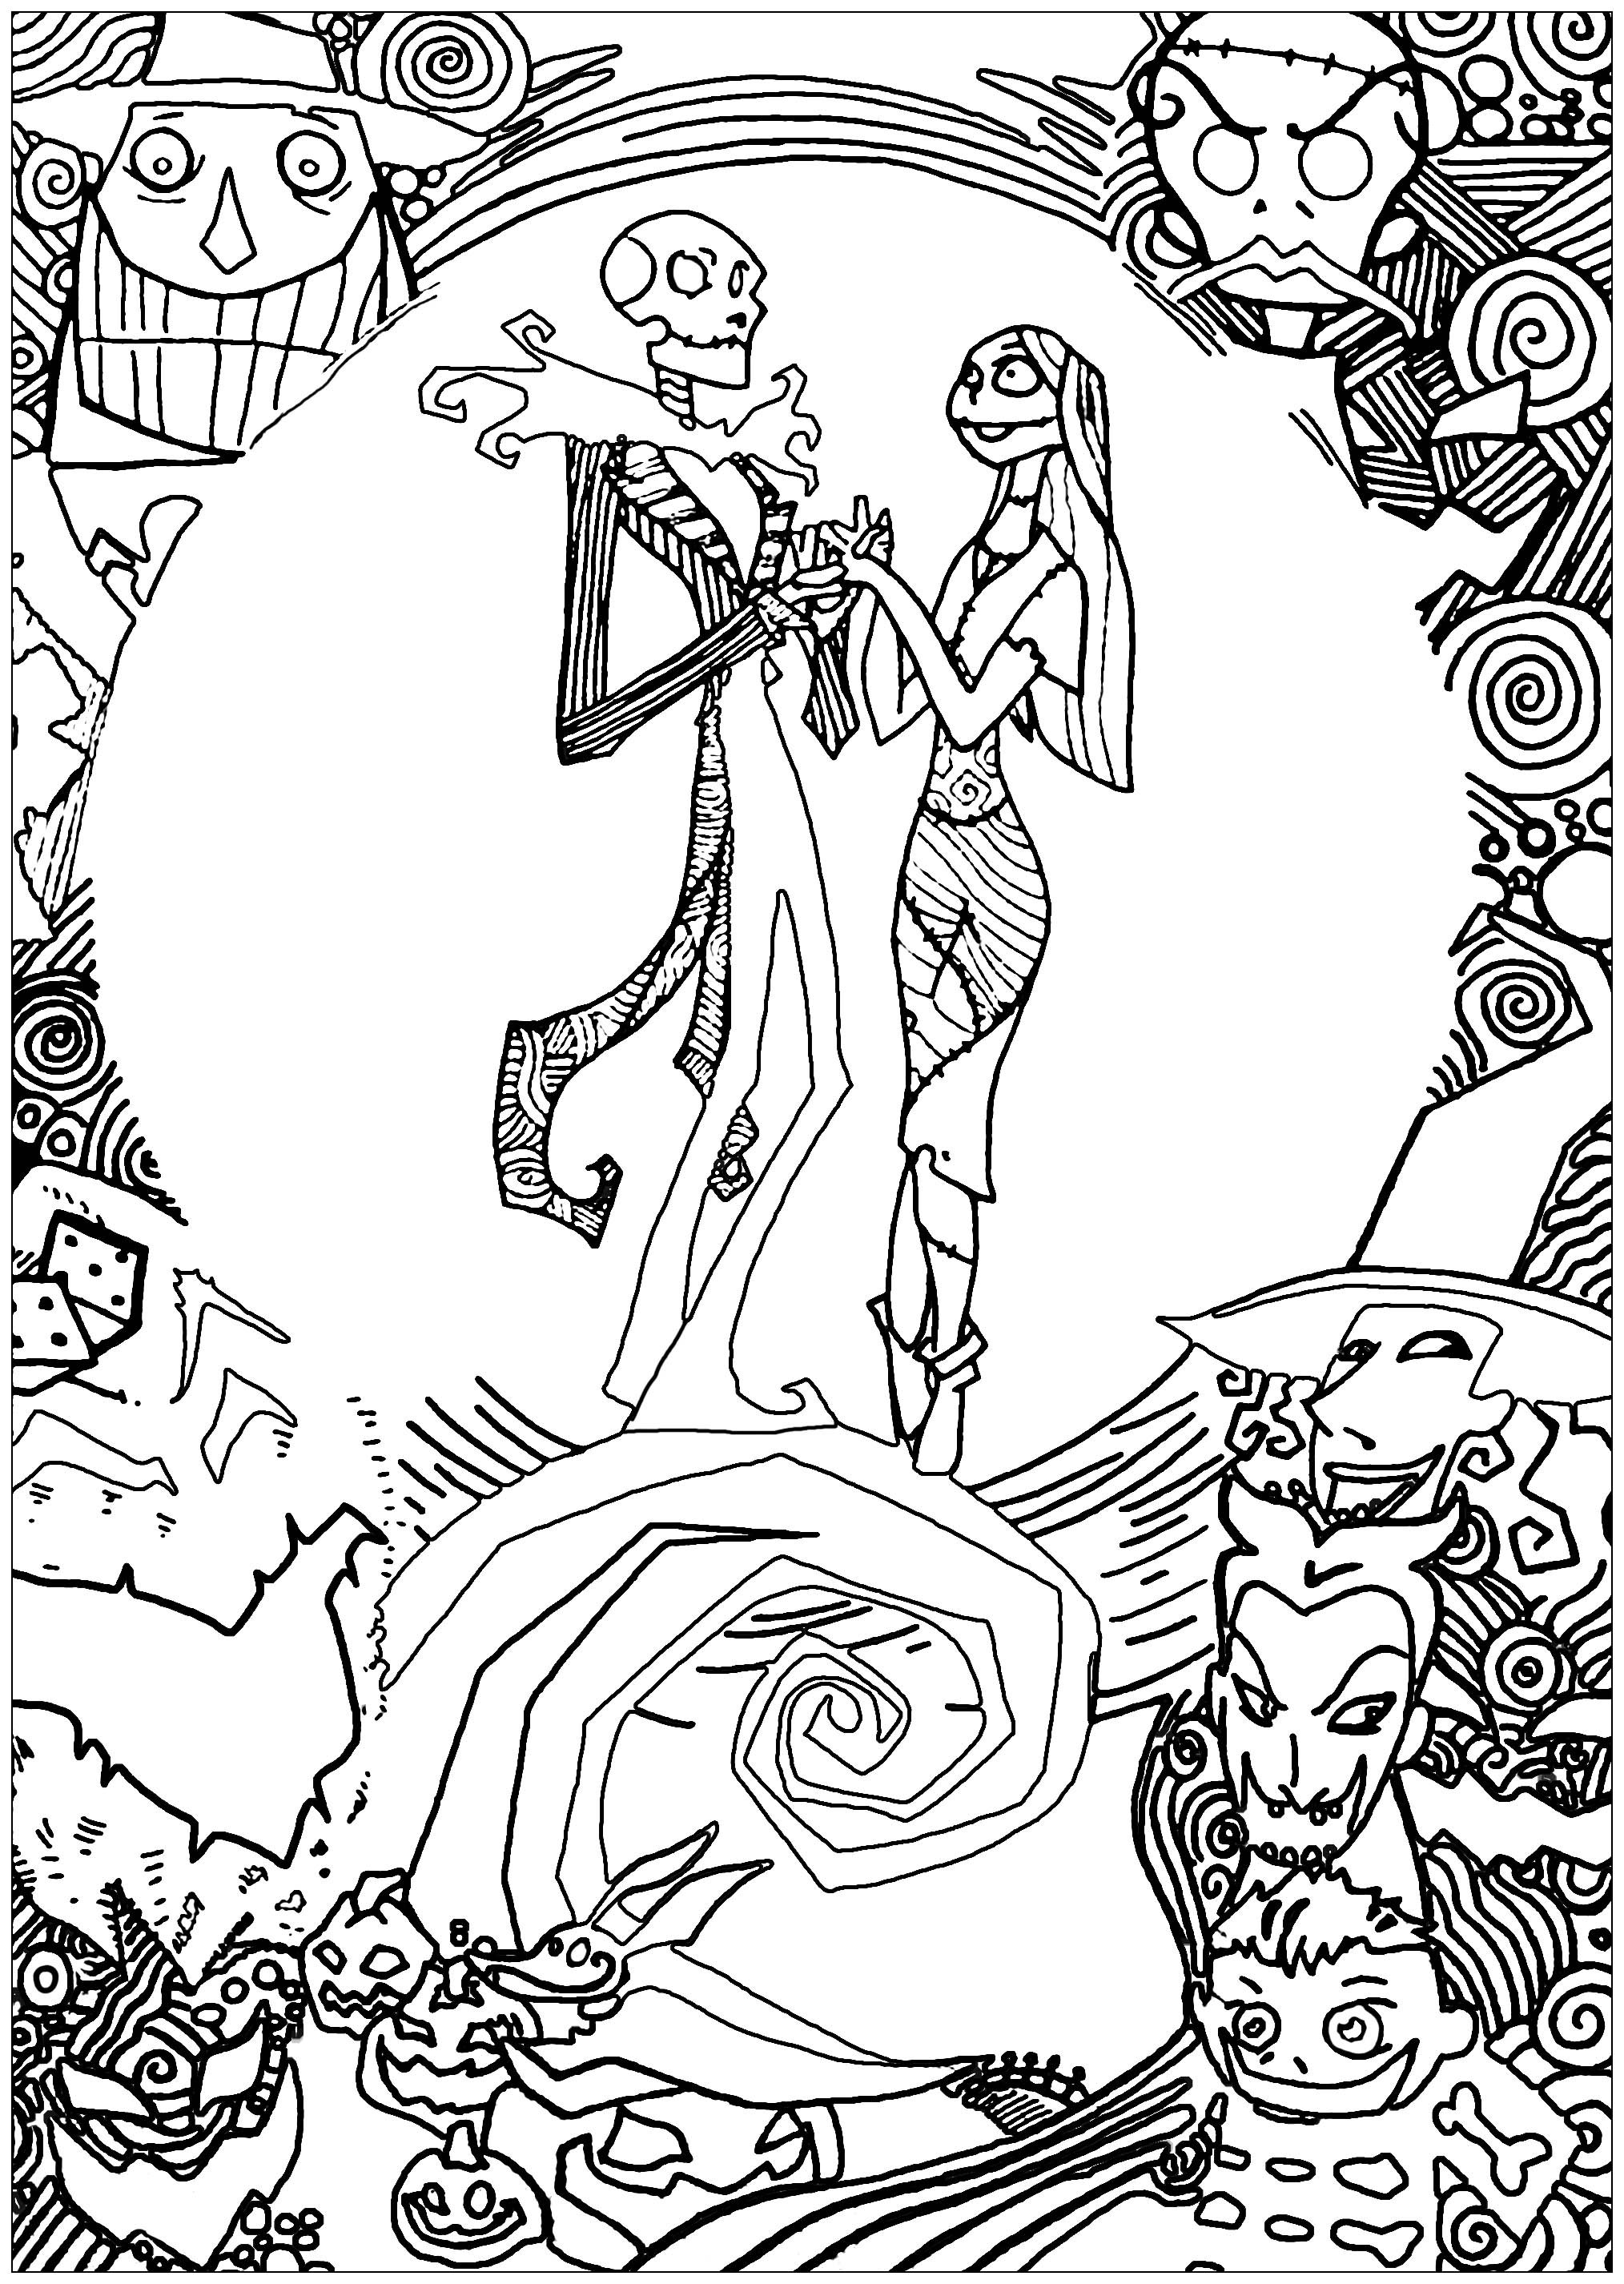 Christmas Coloring Page With Nightmare Before Pages For Adults Crafts And Arts